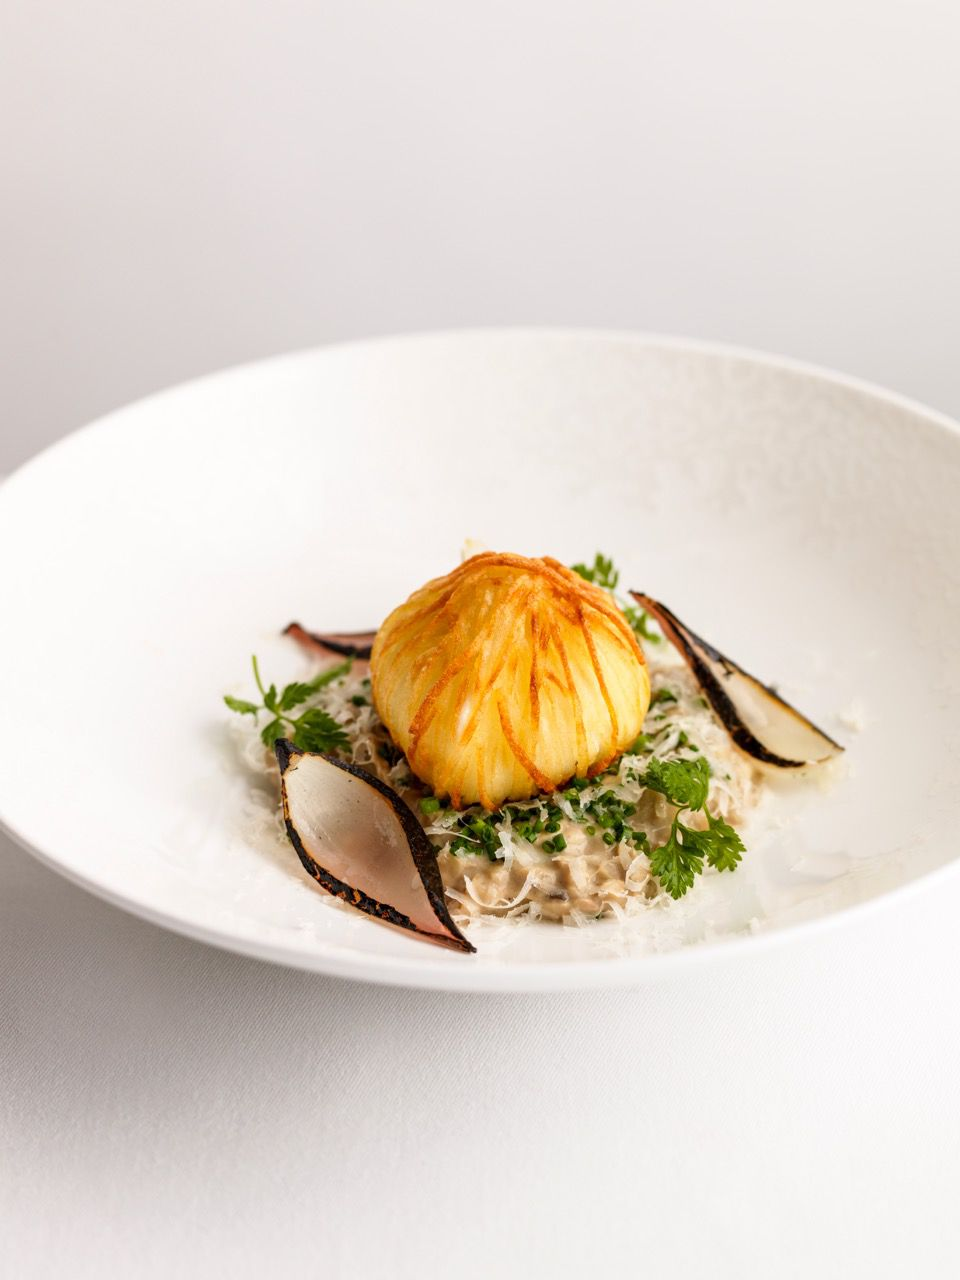 Claude's mushroom risotto with Daniel's crispy egg at Kerridge's Bar and Grill, the upcoming new London restaurant opening from Chef Tom Kerridge